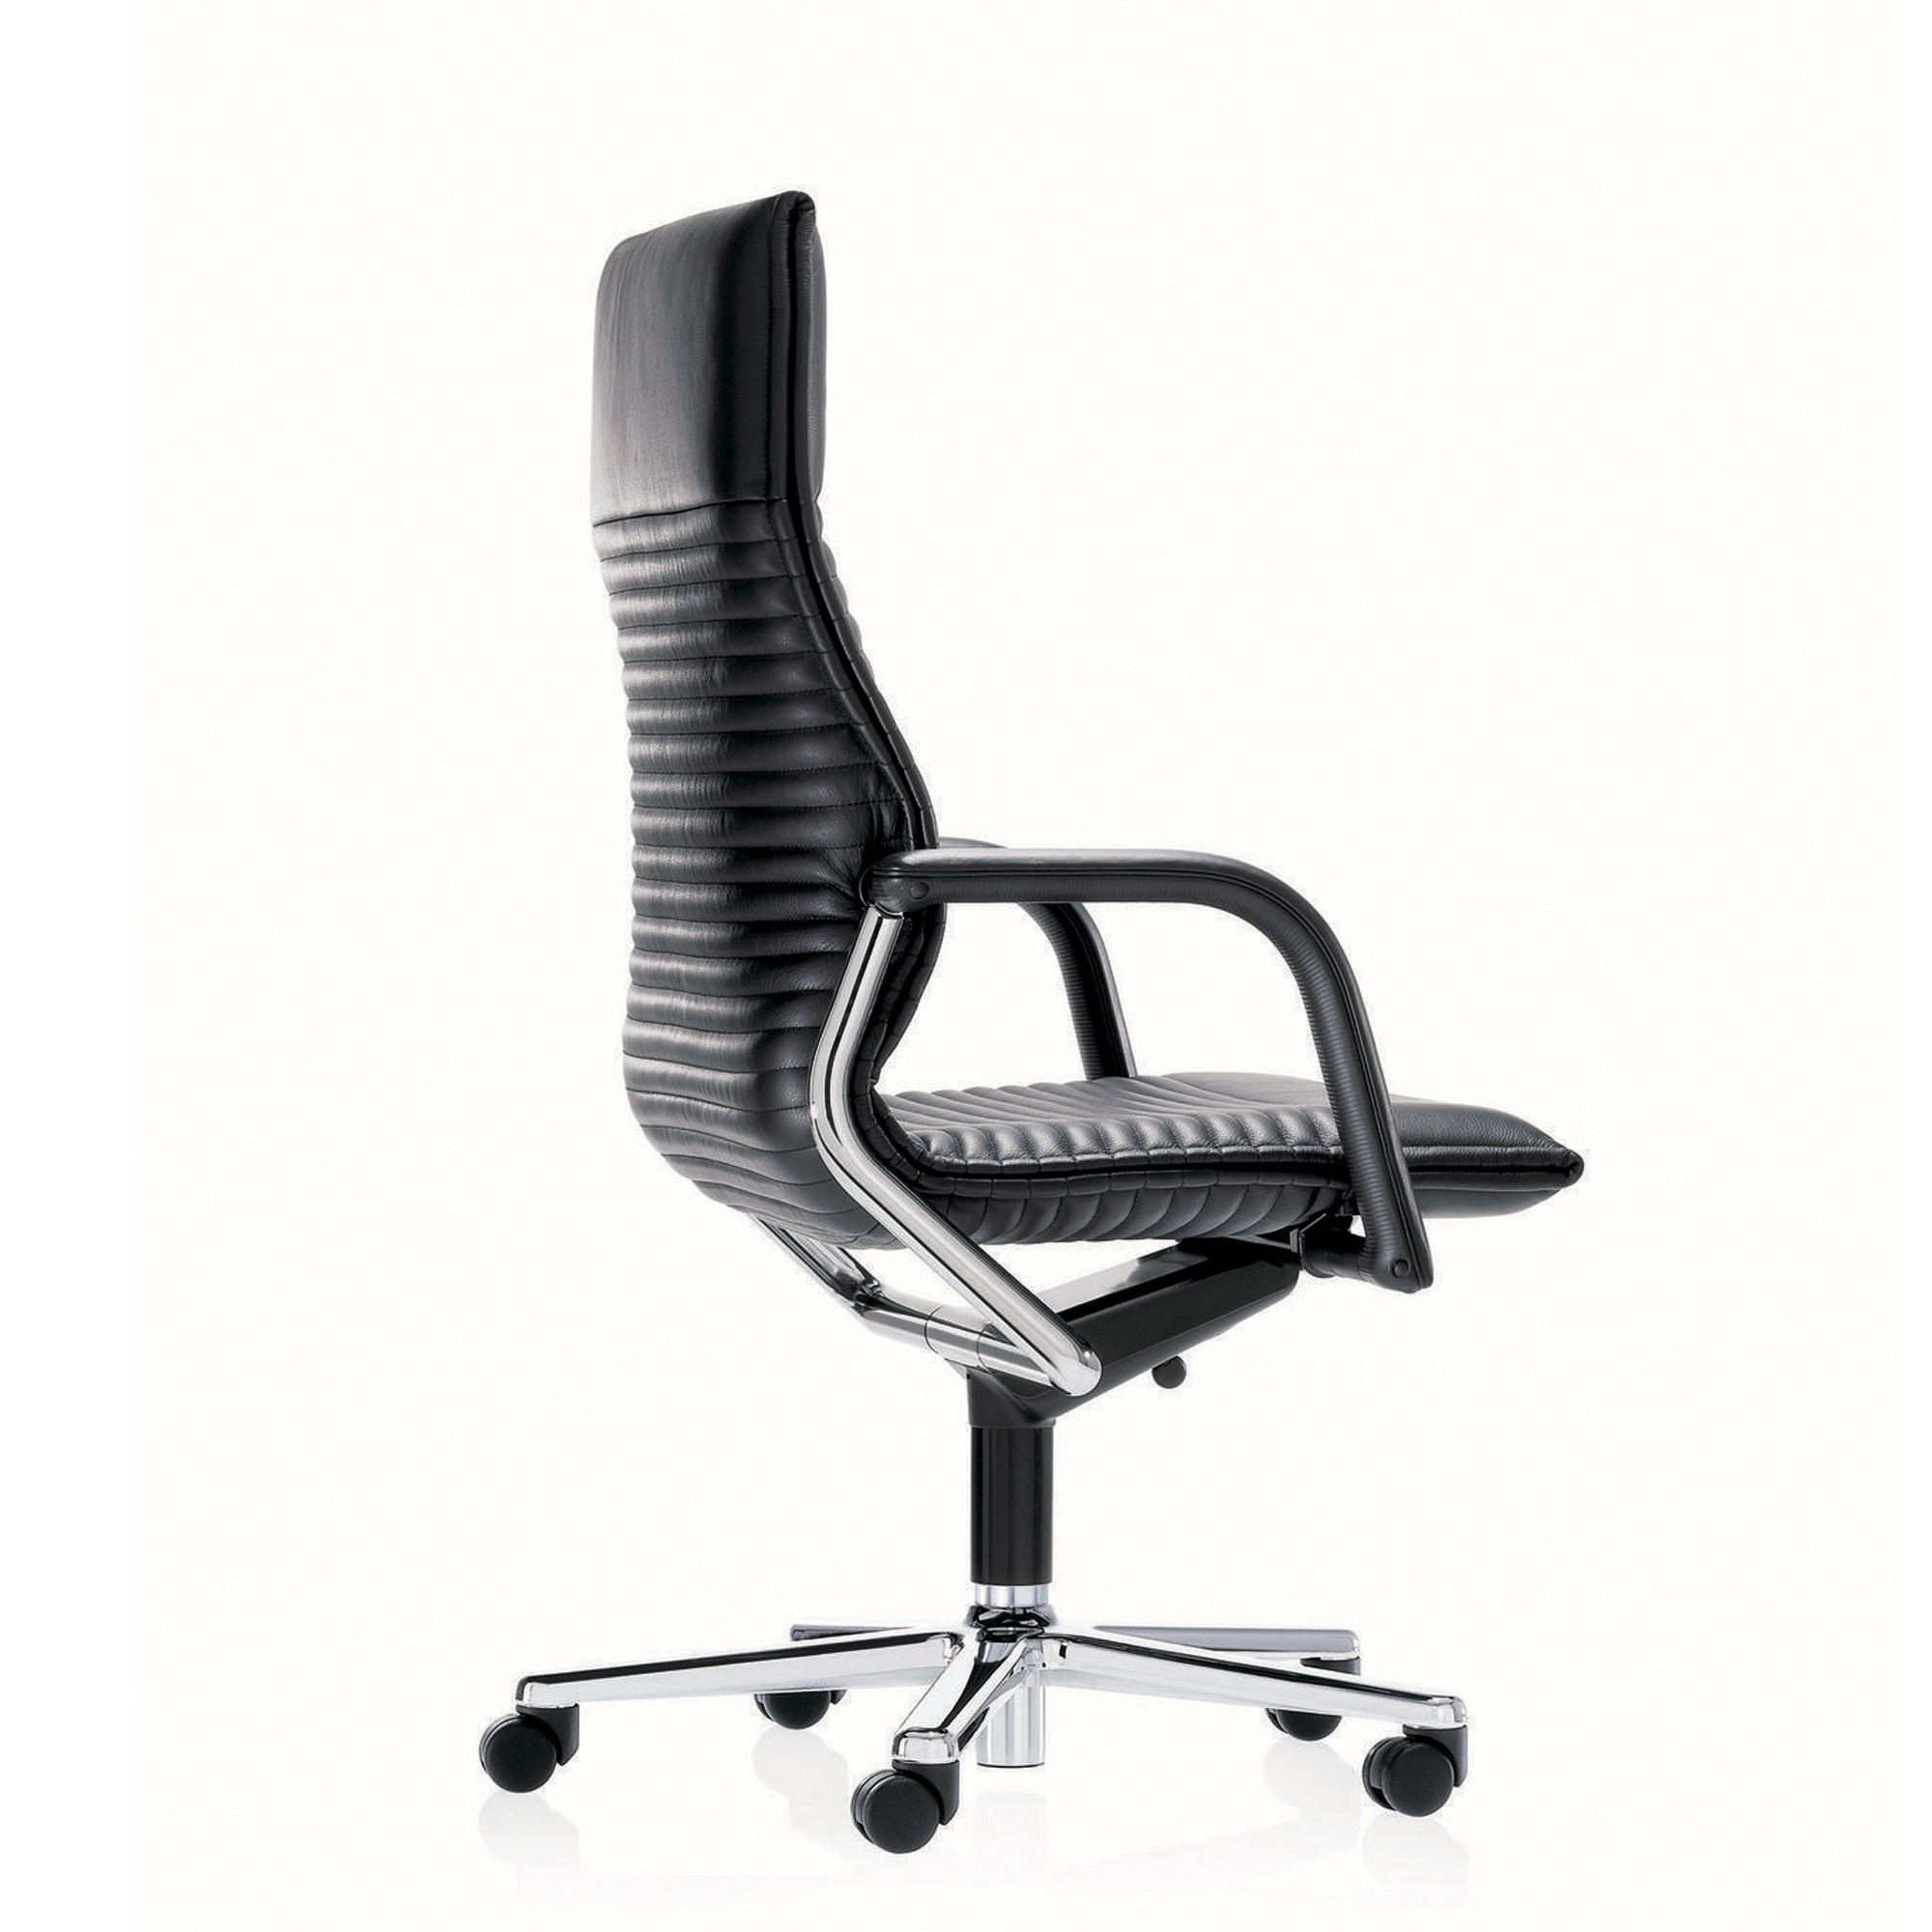 FS Executive High-Back Swivel Chair